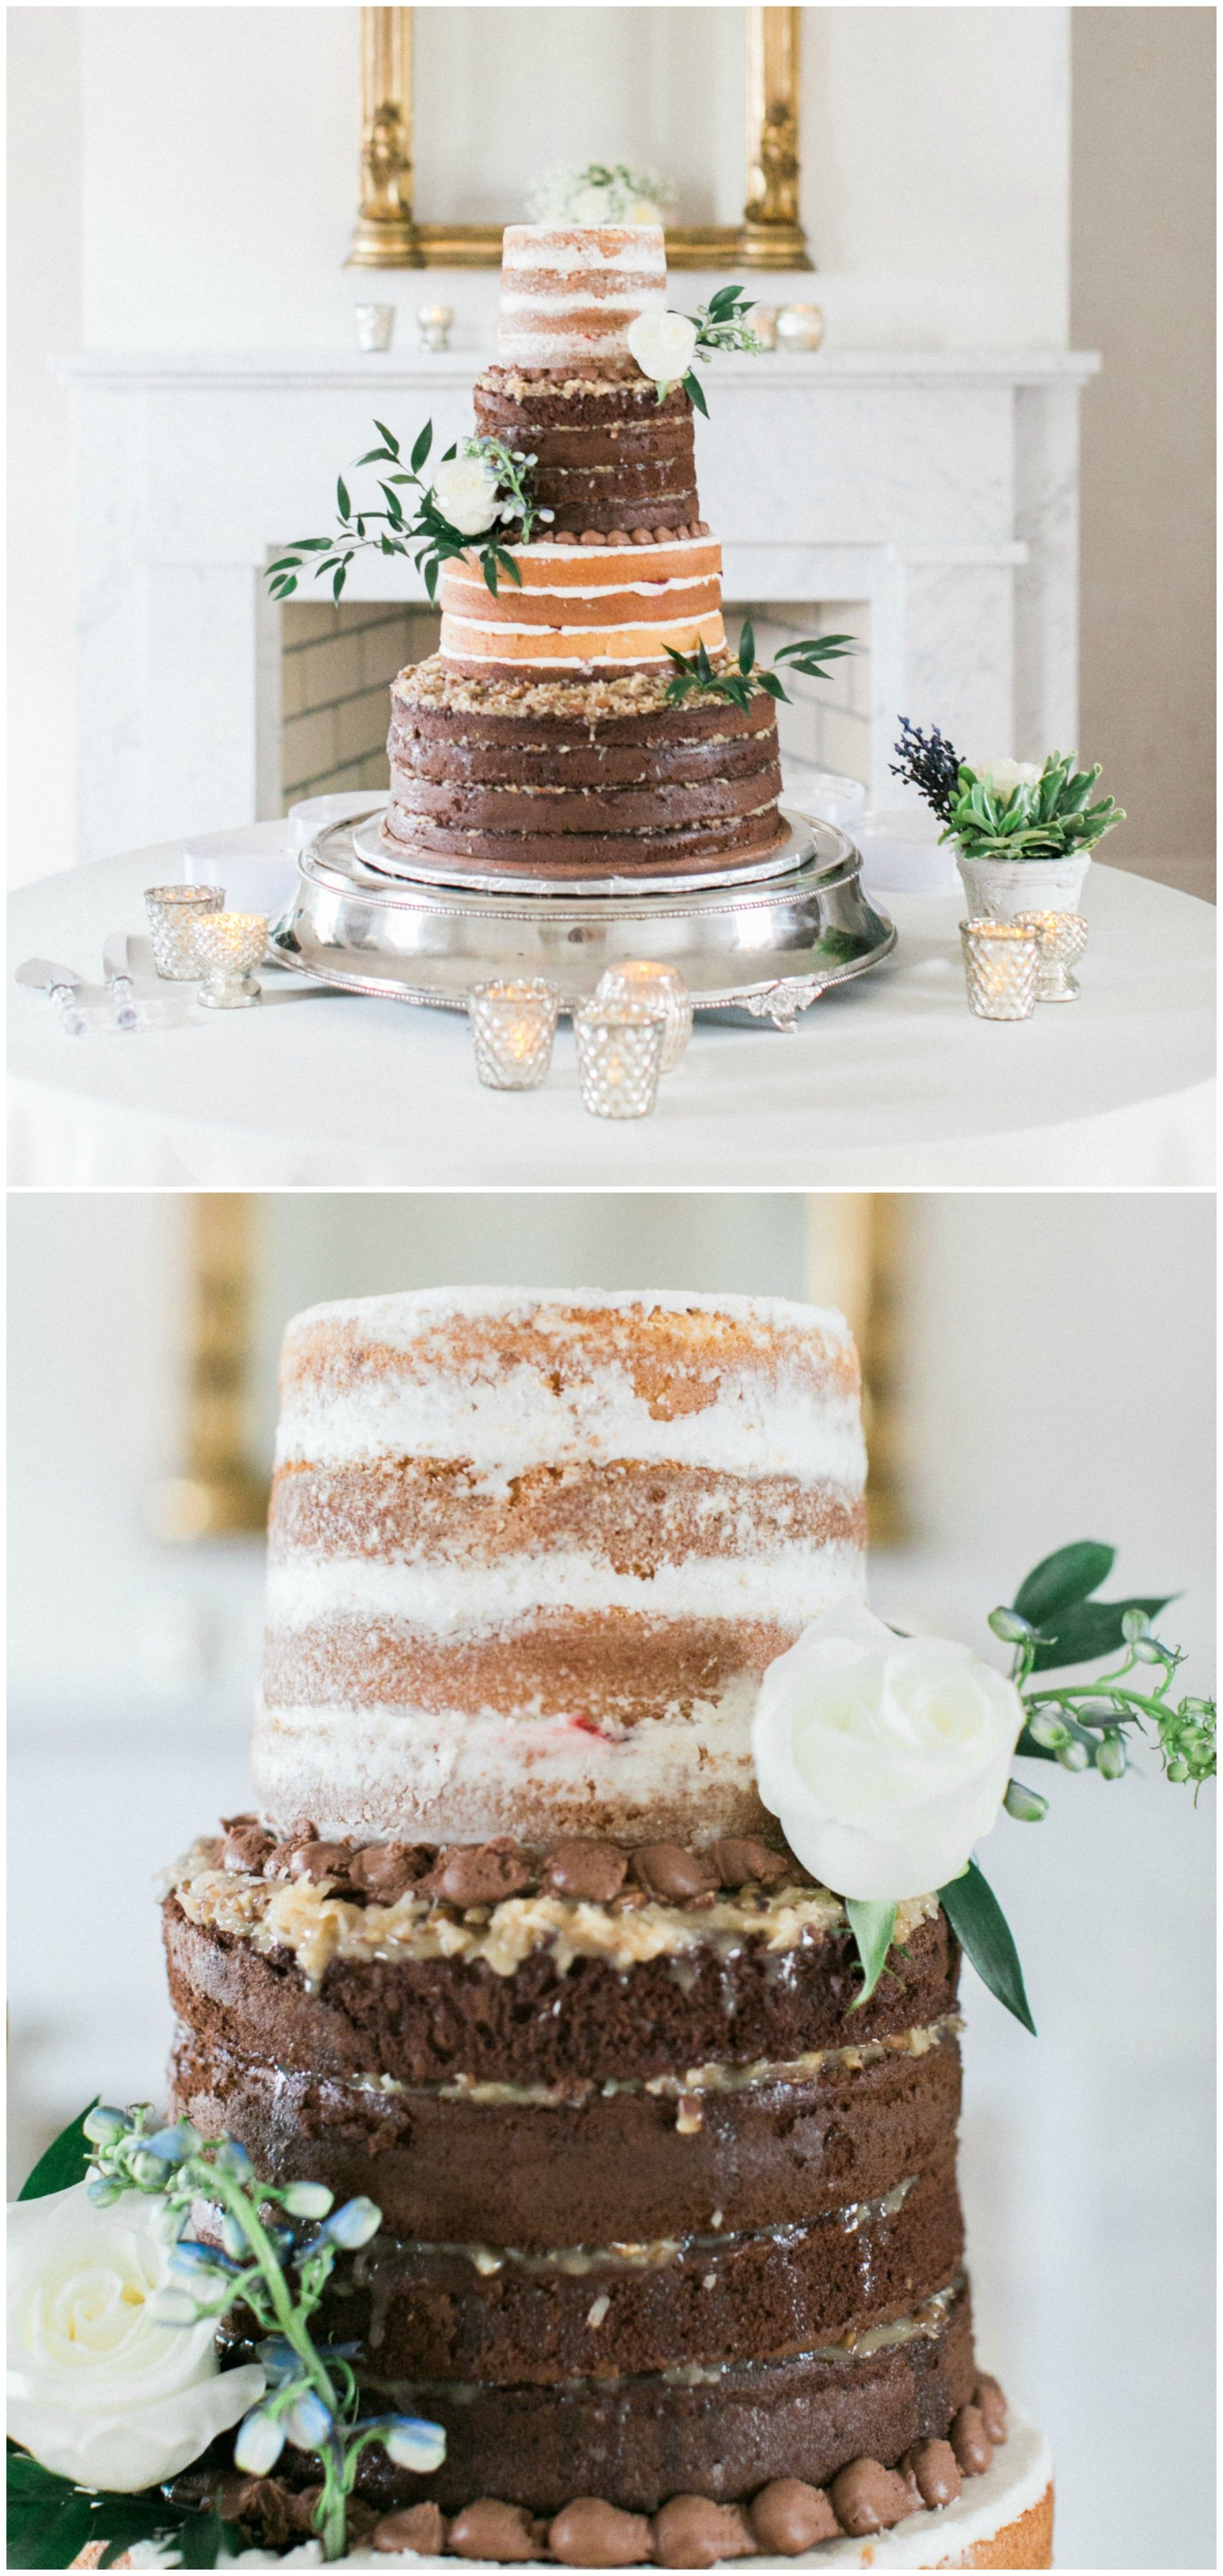 The Smarter Way to Wed | Tall wedding cakes, Wedding cake and White ...